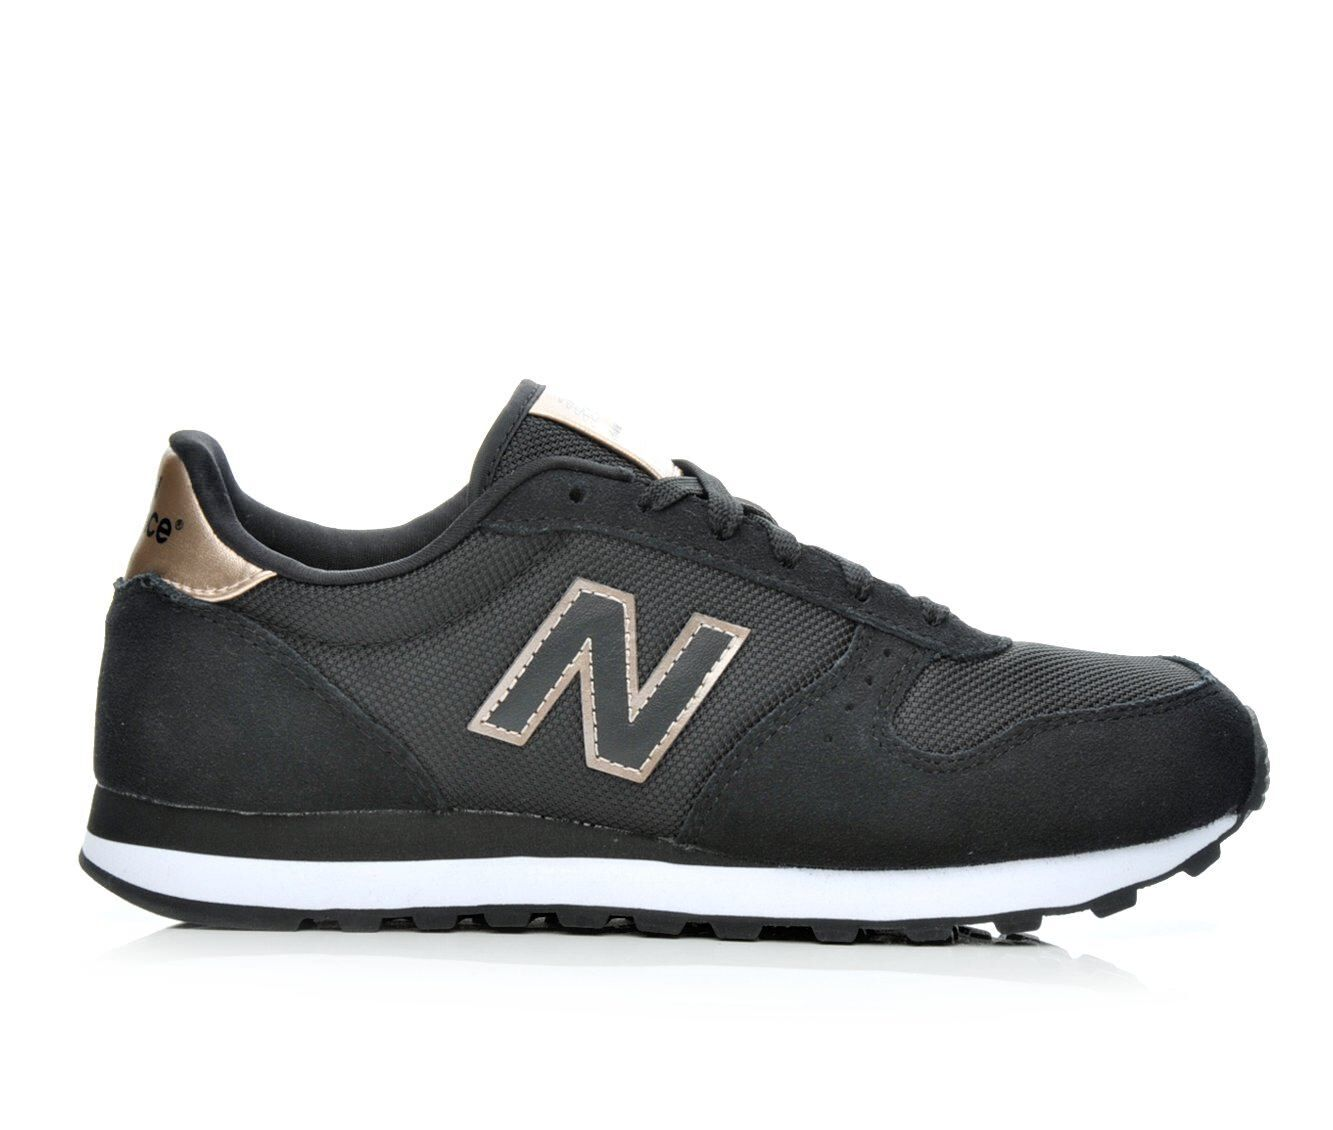 new balance m530 elite dark grey / iridescent